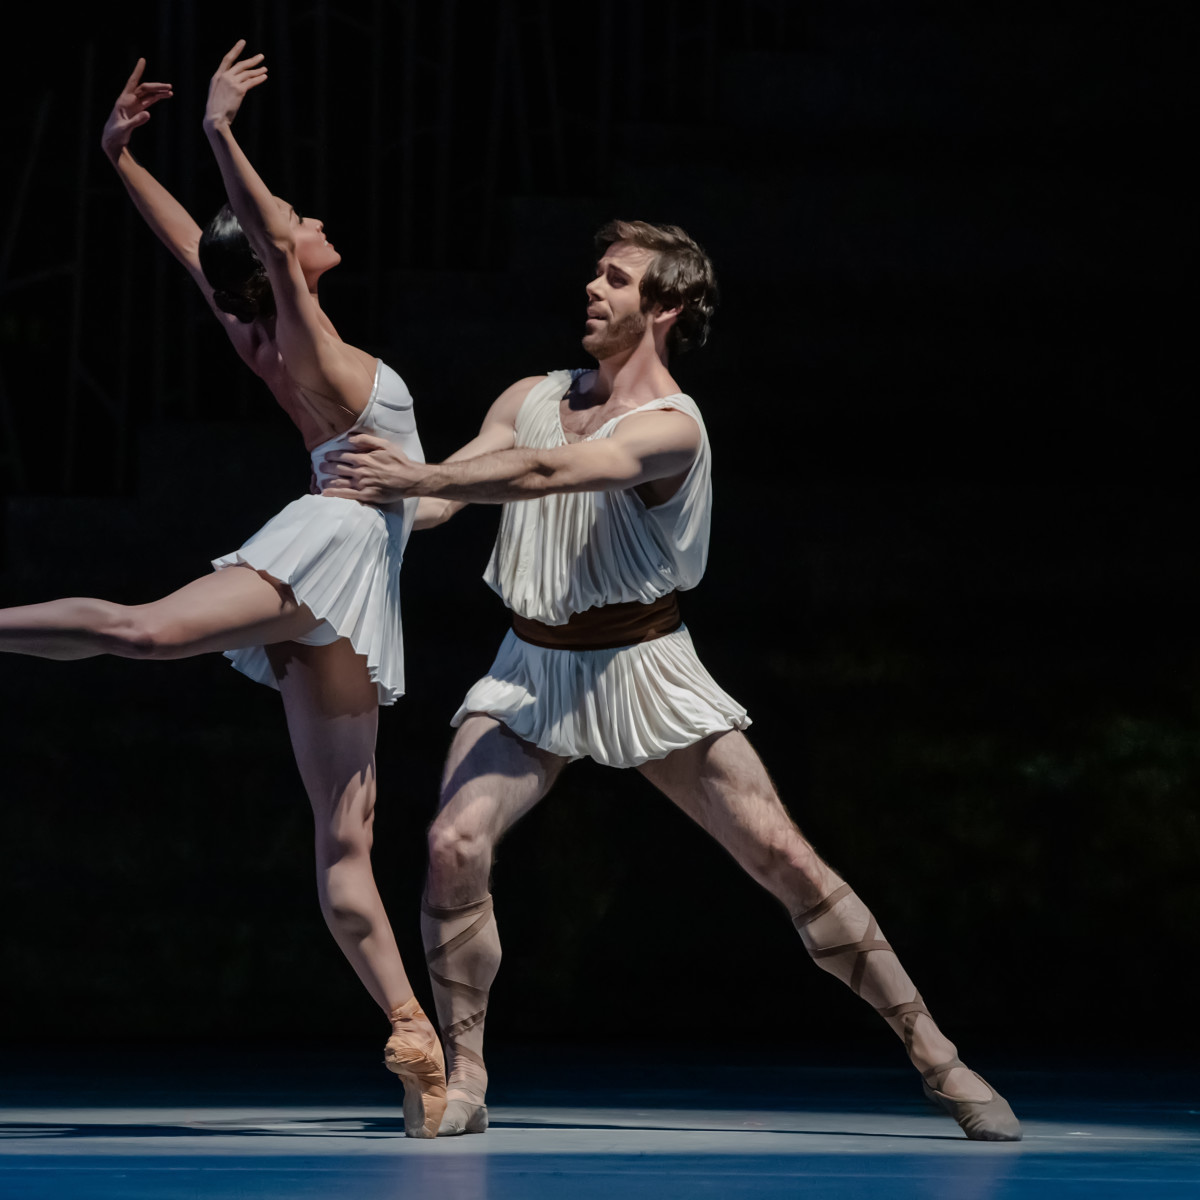 Houston Ballet principals Karina González as Sylvia and Connor Walsh as the Shepherd in Stanton Welch's Sylvia